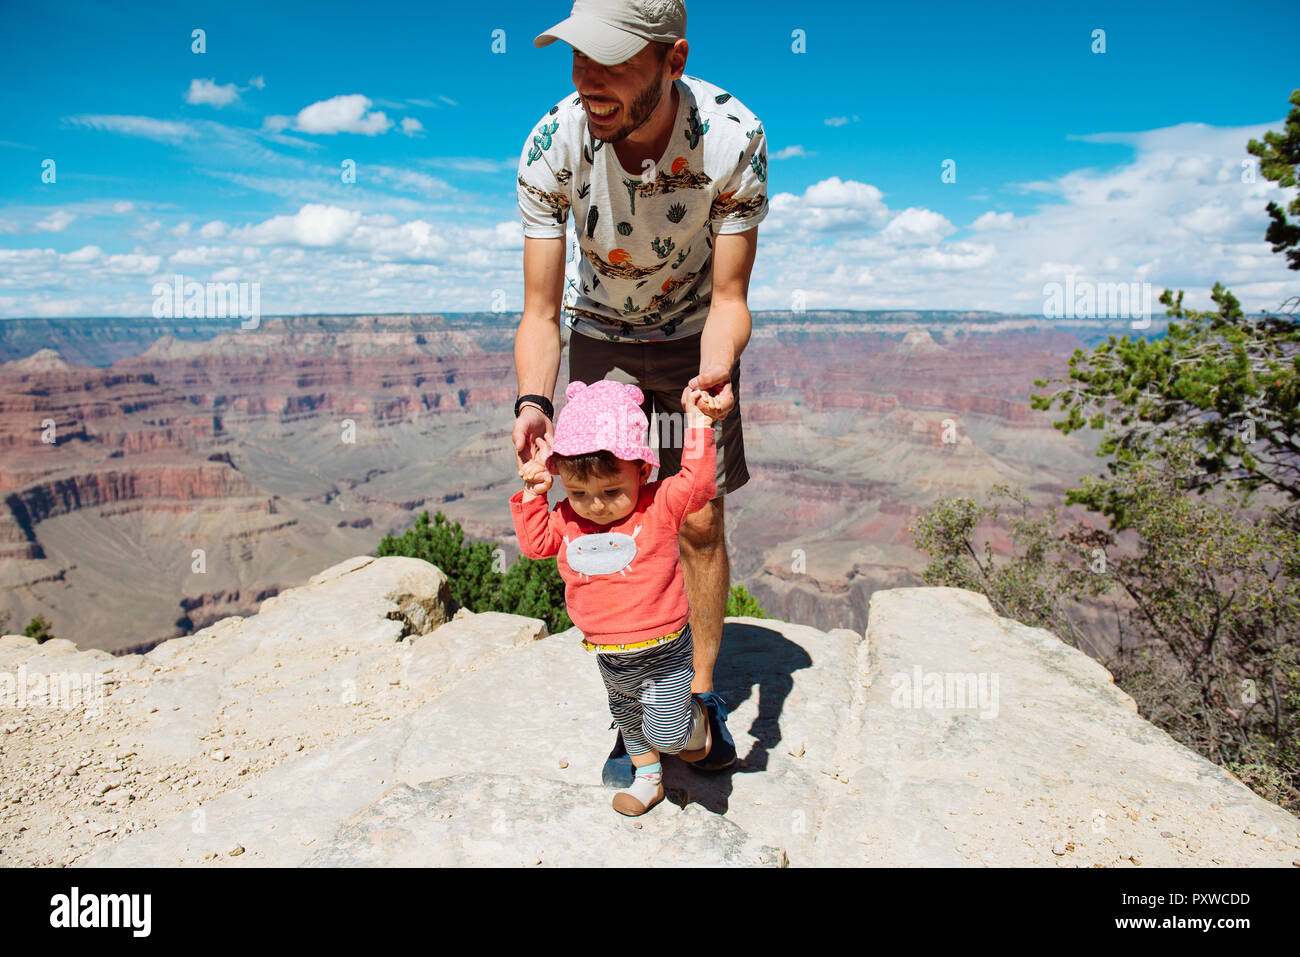 USA, Arizona, Grand Canyon National Park, father and baby girl  on viewpoint, girl learning to walk - Stock Image